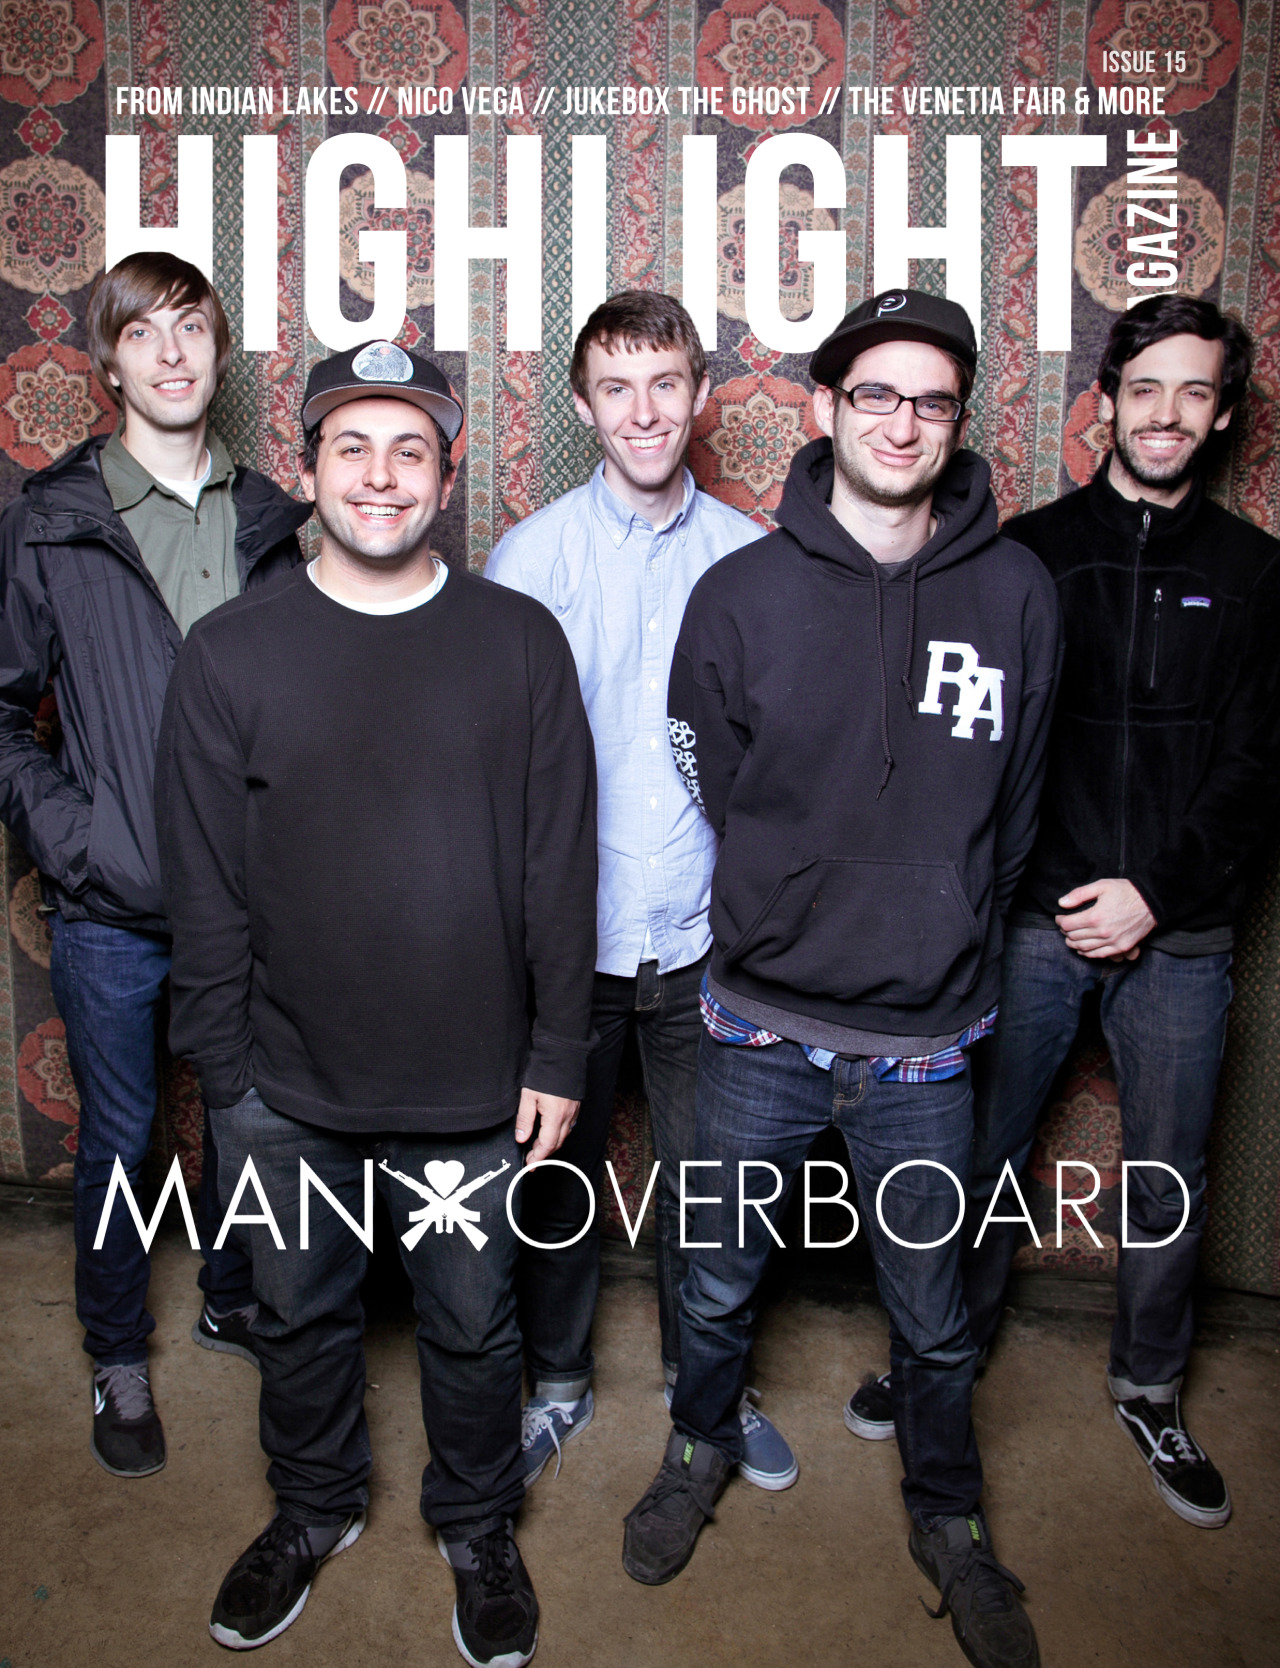 May's issue is finally here. This month we've certainly stepped up our game. Issue #15 is truly one of our most diverse issues by far! Man Overboard is back with a brand new full-length, Heart Attack (released May 28th). They're pushing forward keeping their genuine + DIY mentality and they have quite a story to share. This issue also brings Marina City, X AMBASSADORS, From Indian Lakes, Nico Vega, Jukebox The Ghost, The Venetia Fair and many more! CLICK HERE to read this issue for free!CLICK HERE to buy a physical copy of this issue! Connect with Highlight: Twitter / Facebook / Instagram / Previous Issues